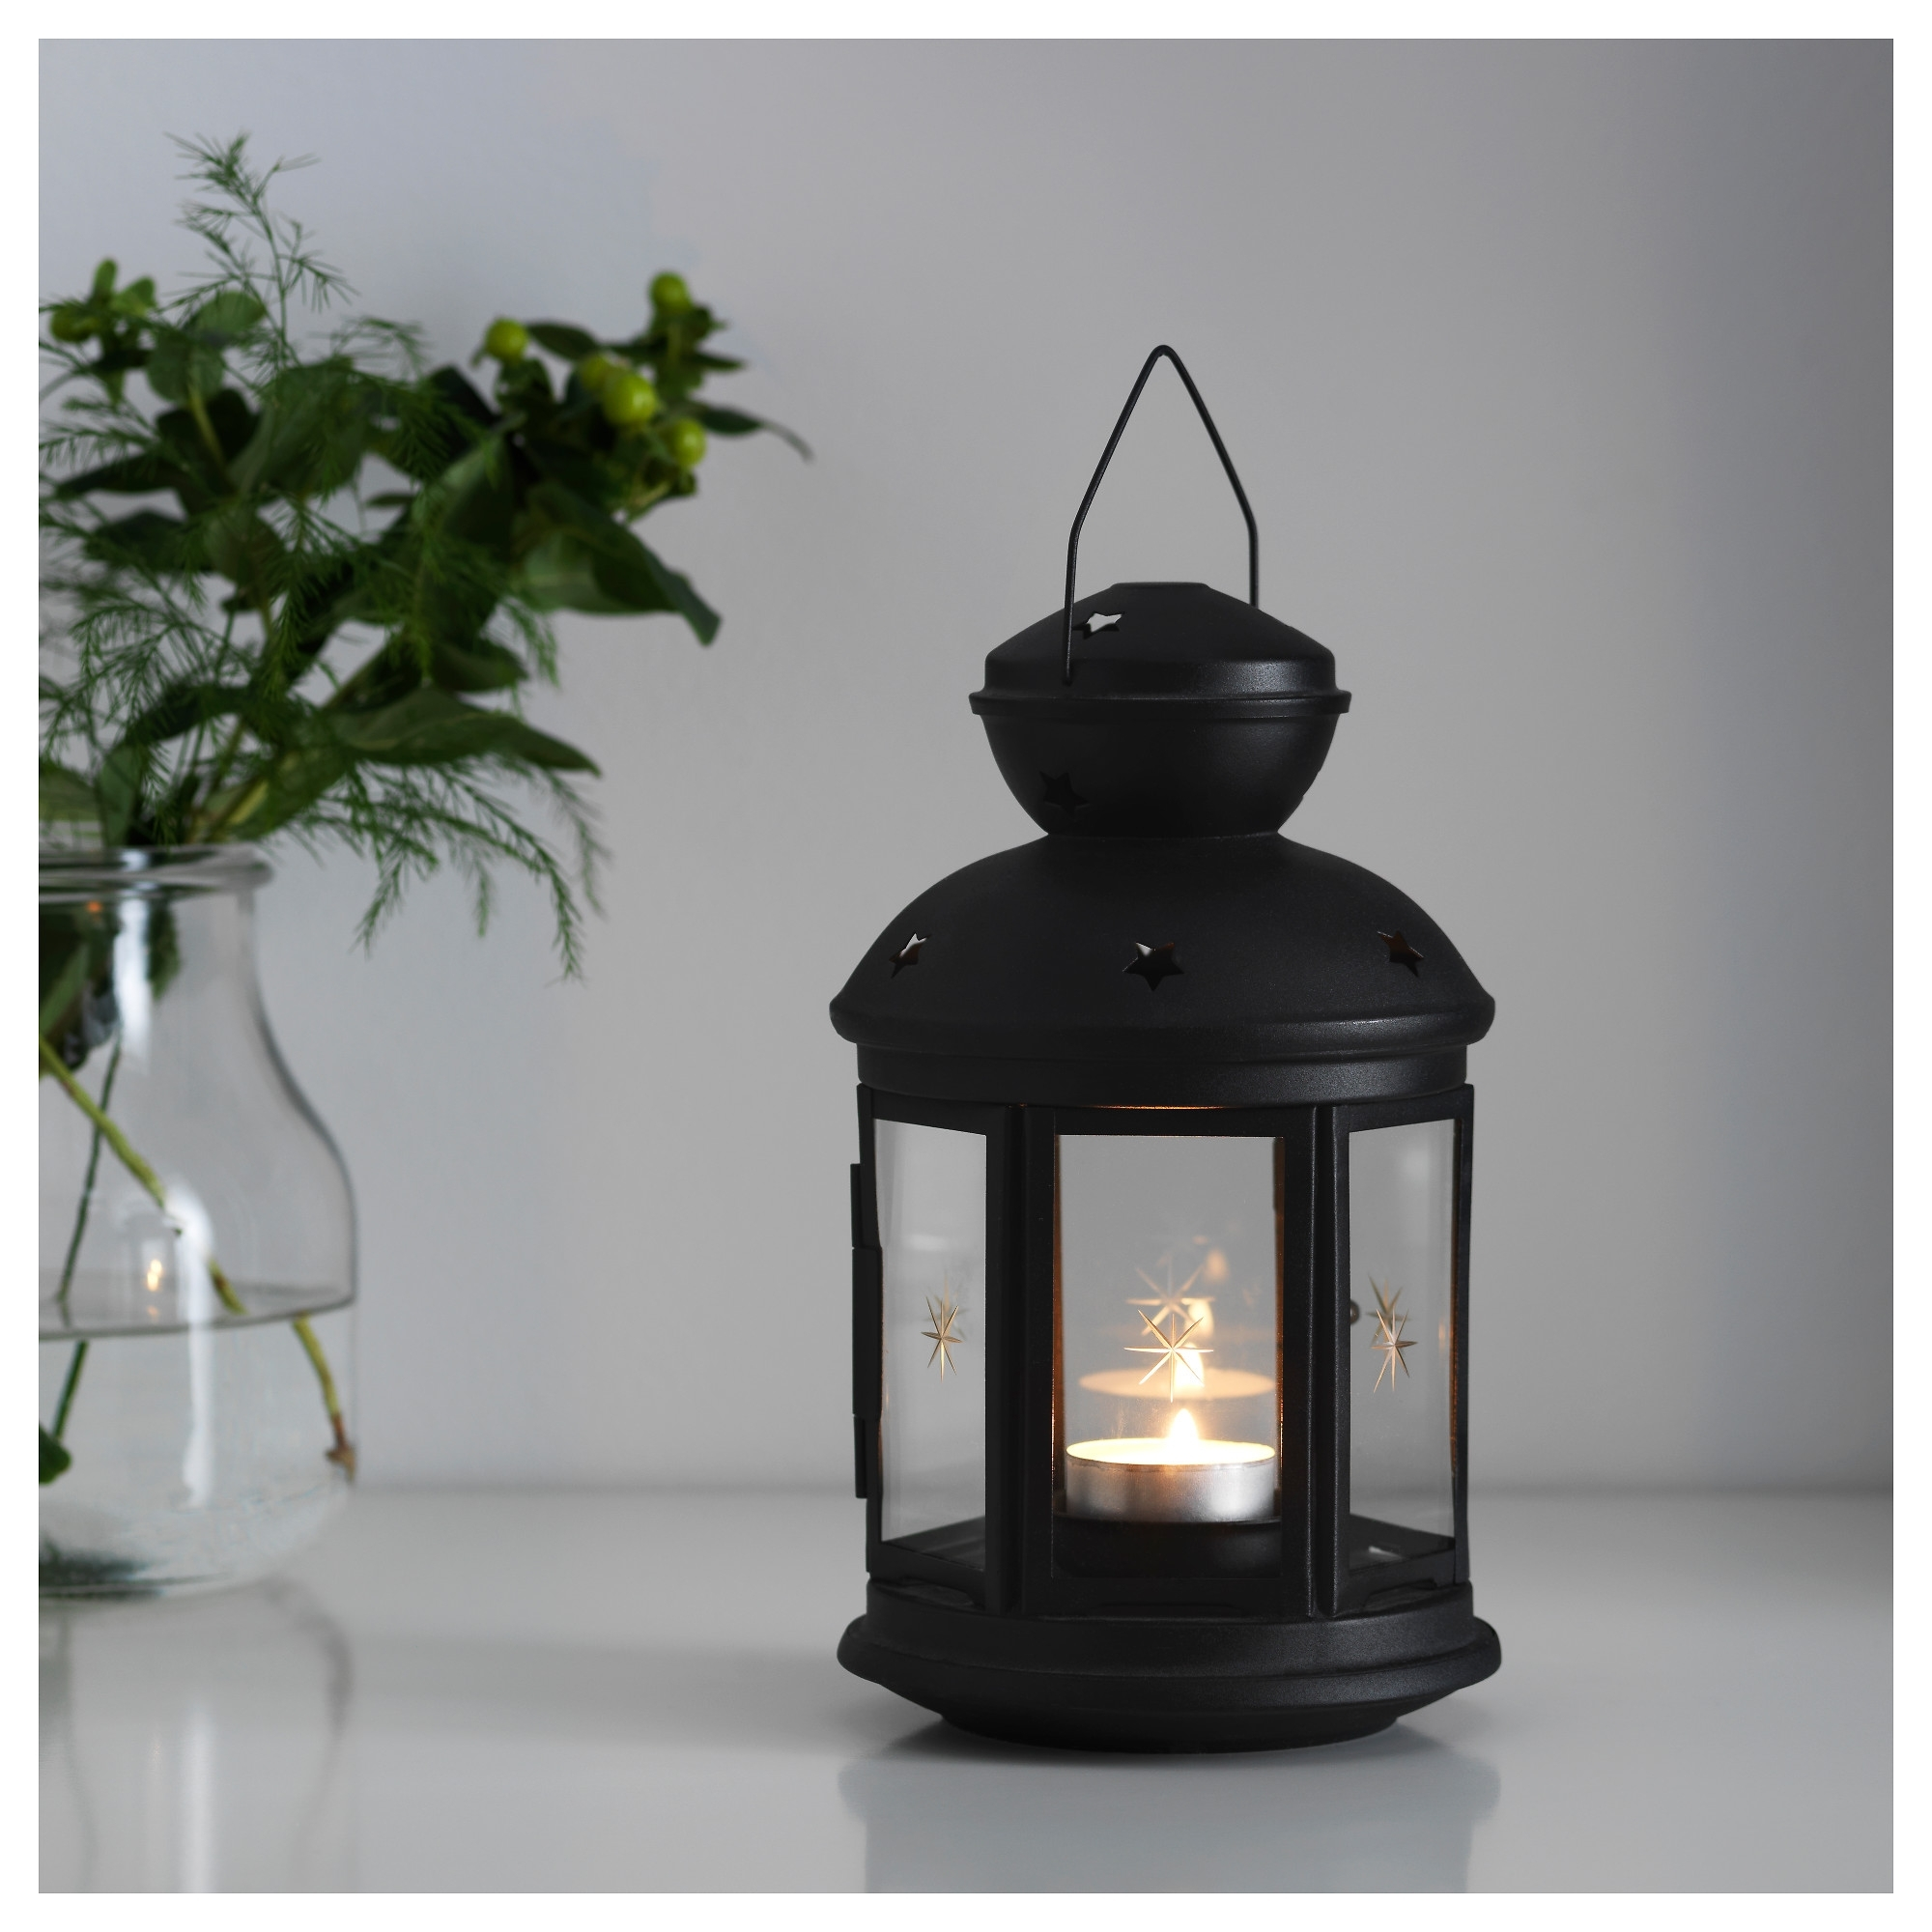 Hanging Outdoor Tea Light Lanterns Throughout Fashionable Rotera Lantern For Tealight – Ikea (View 5 of 20)